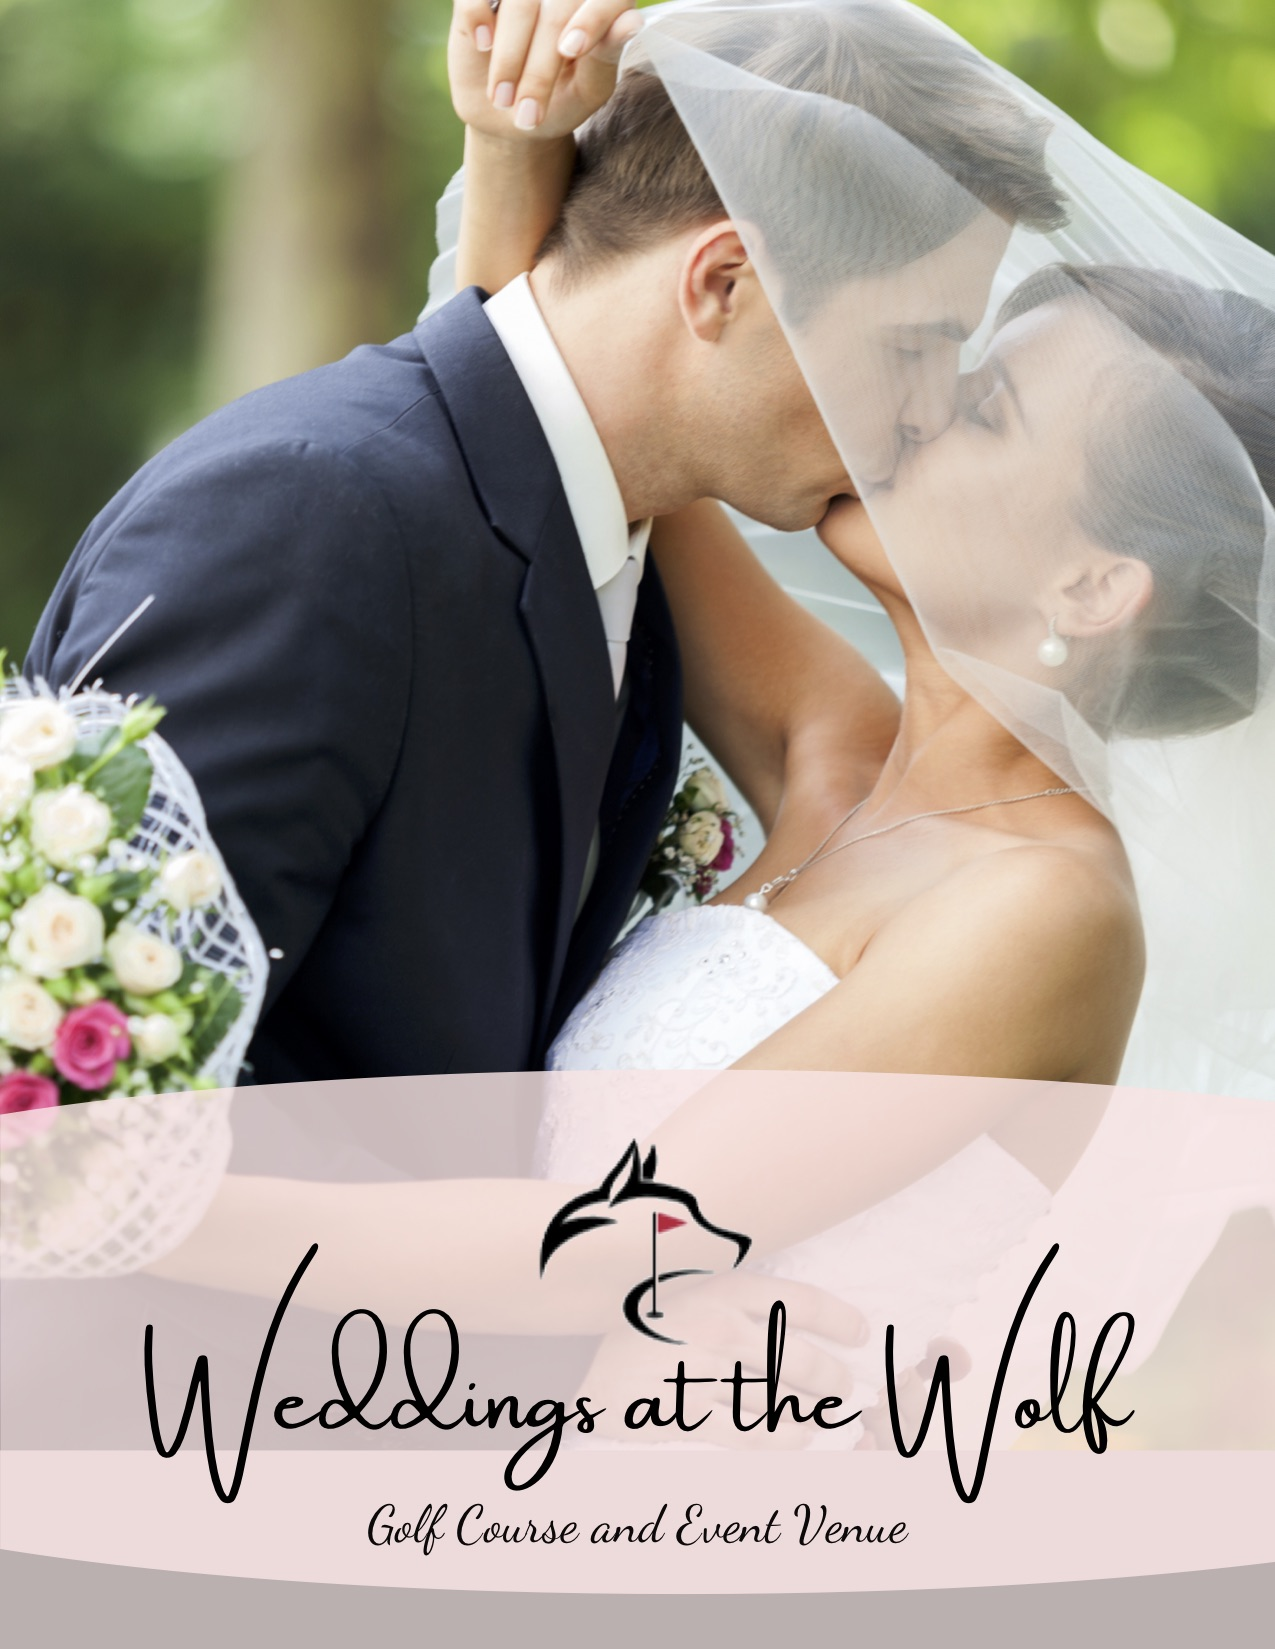 Weddings at the Wolf PDF